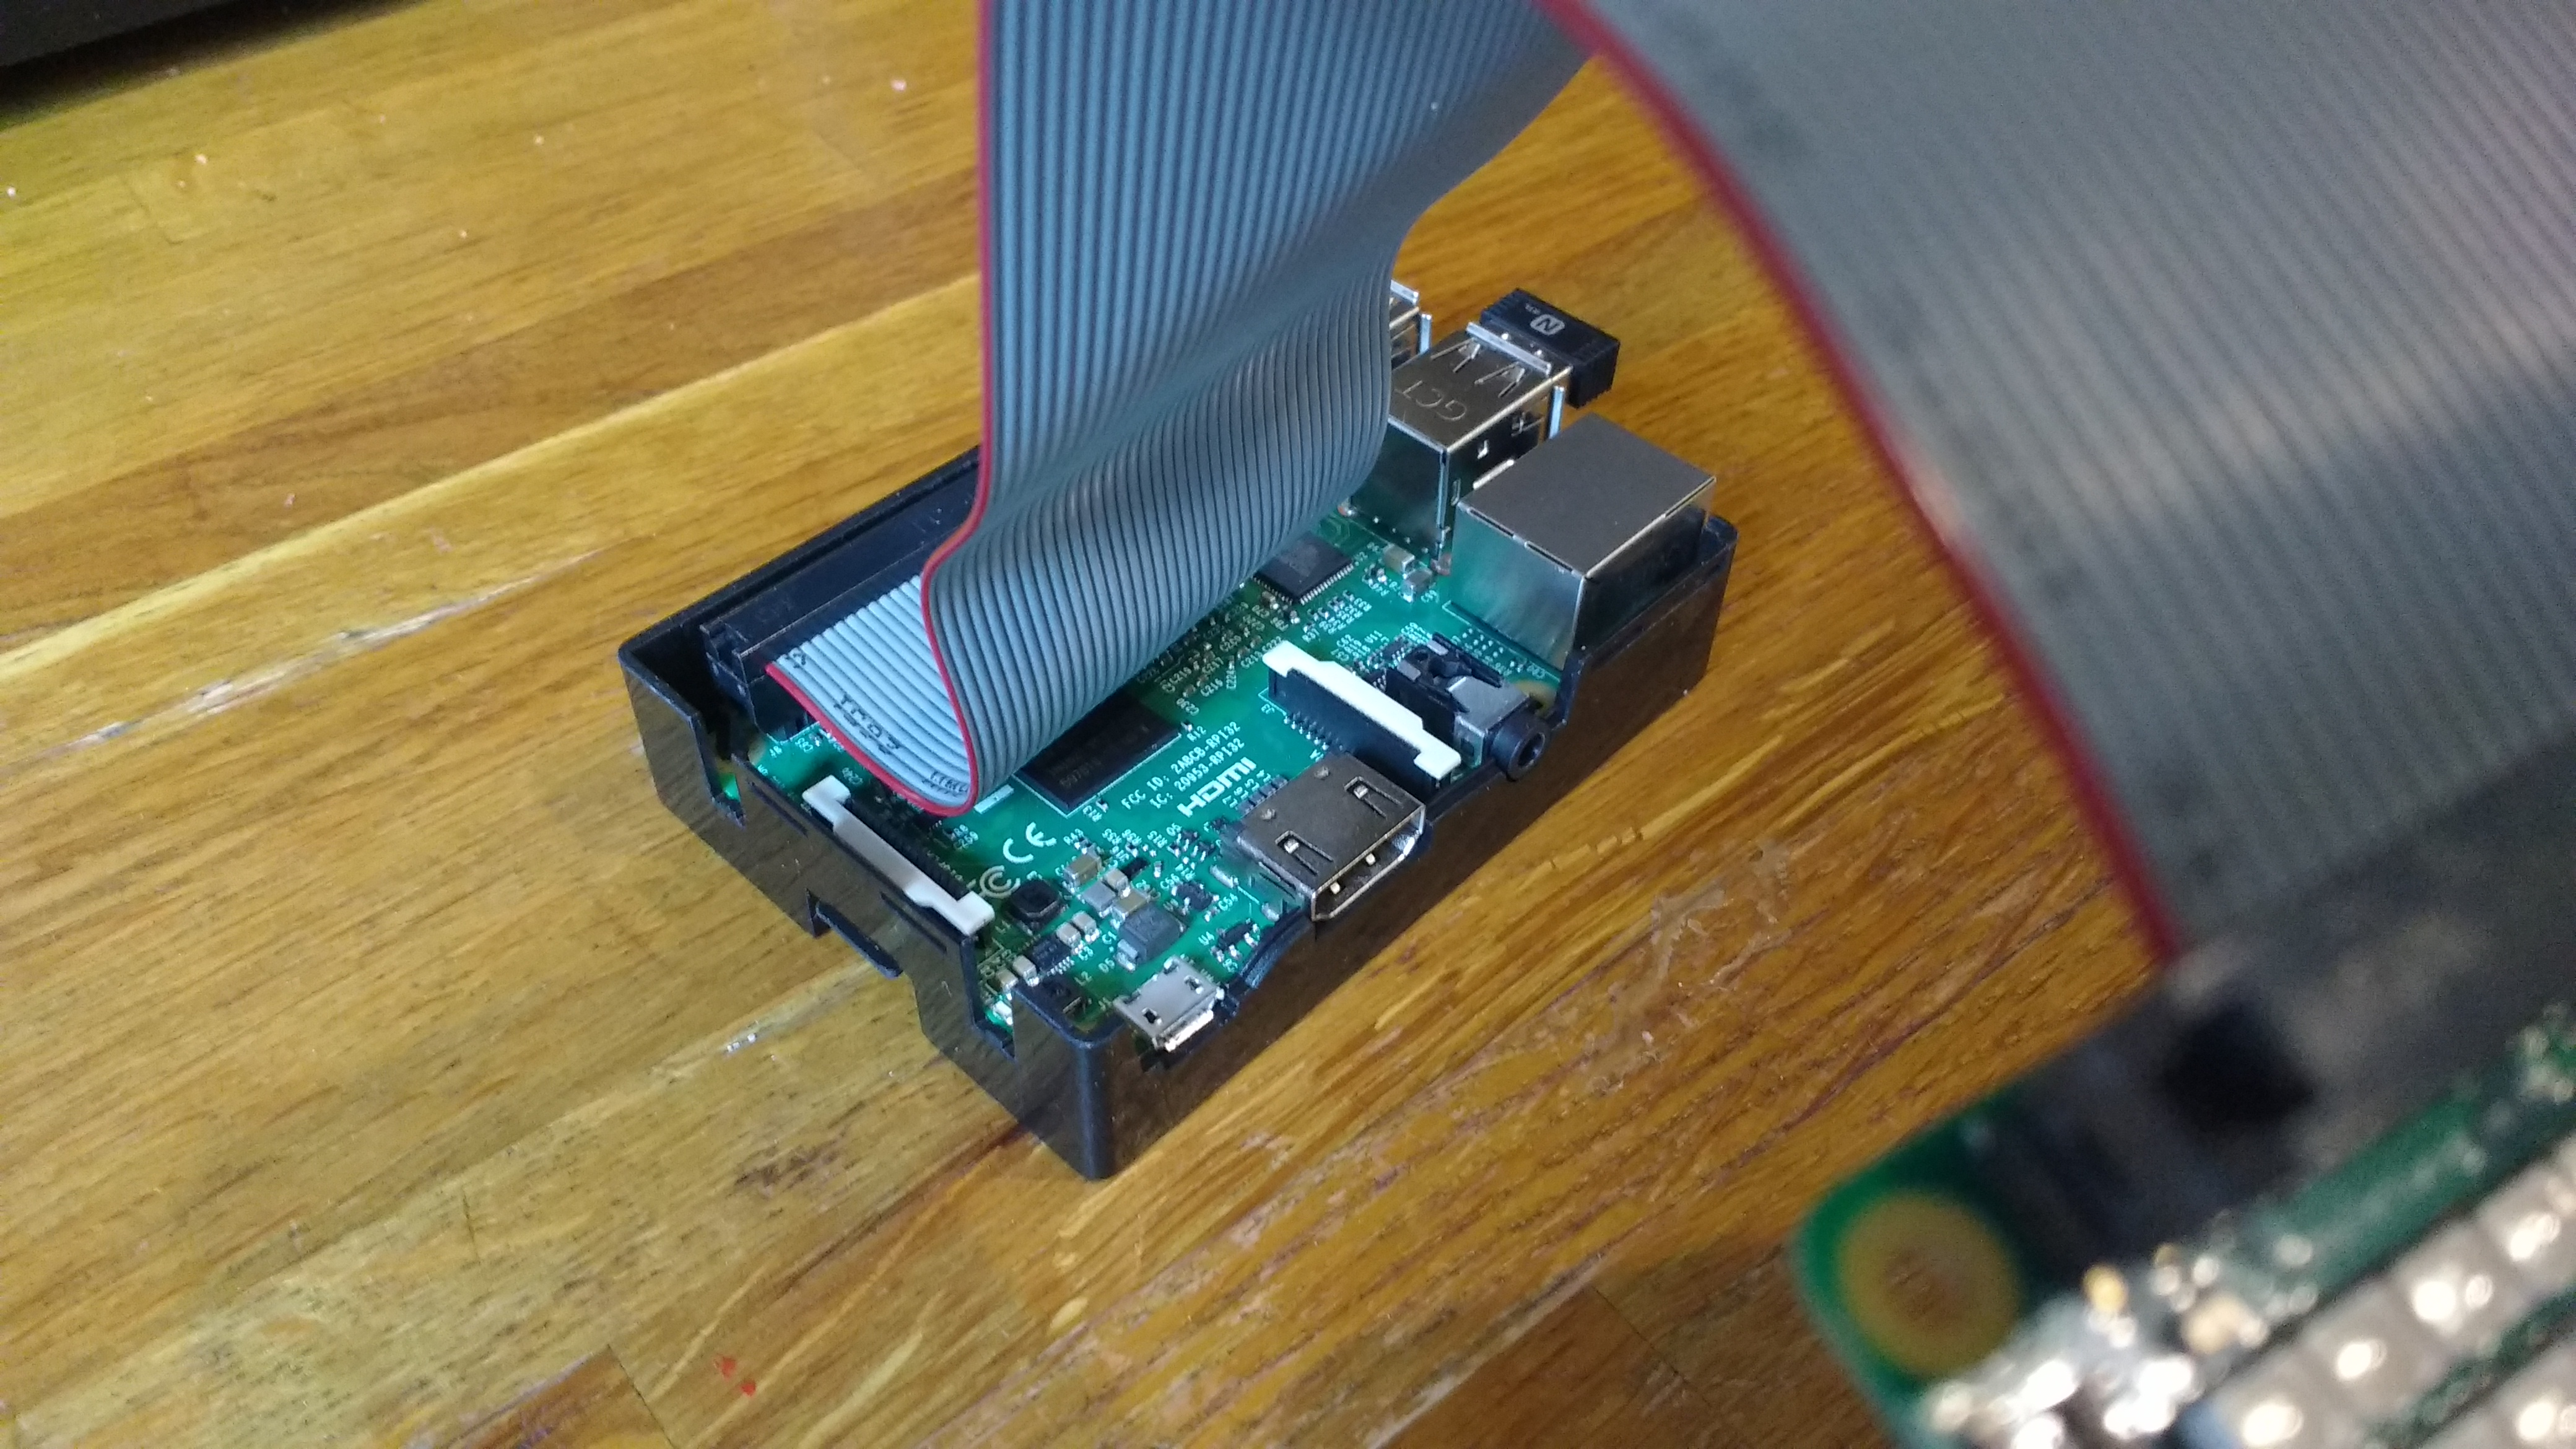 Connecting a Raspberry Pi Sense HAT with a ribbon cable on